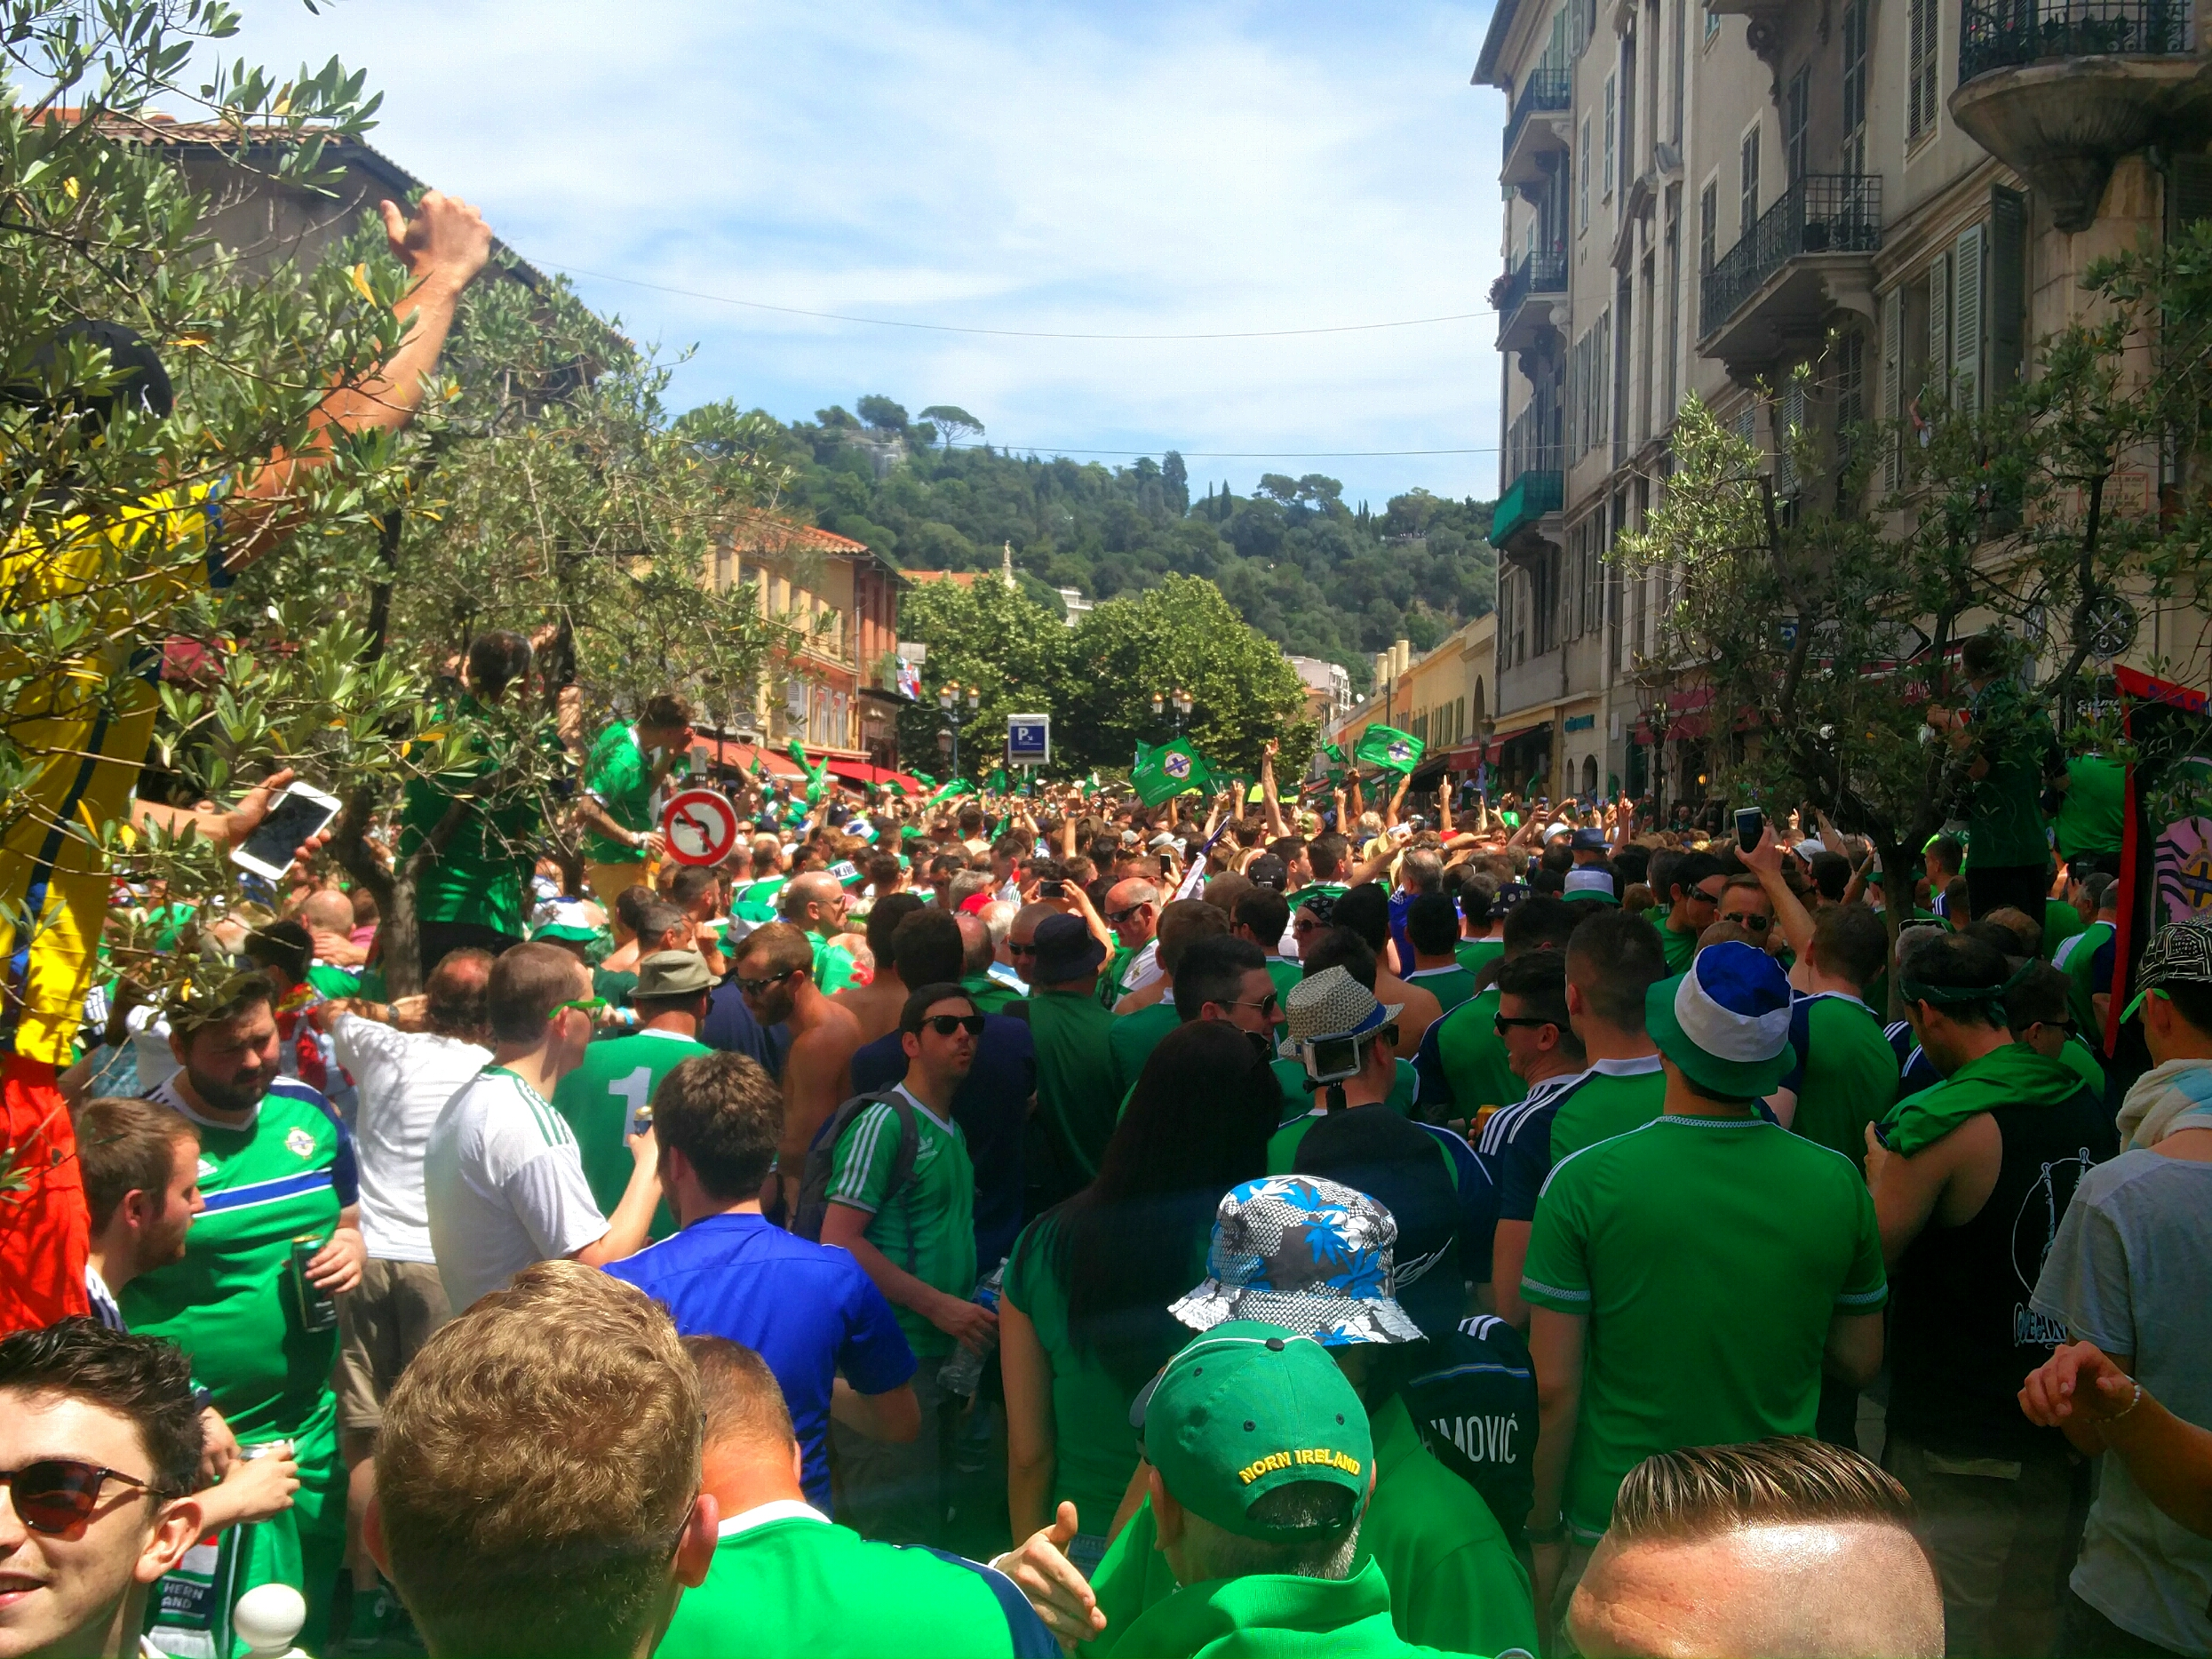 Norther Irish fans going crazy in the street.